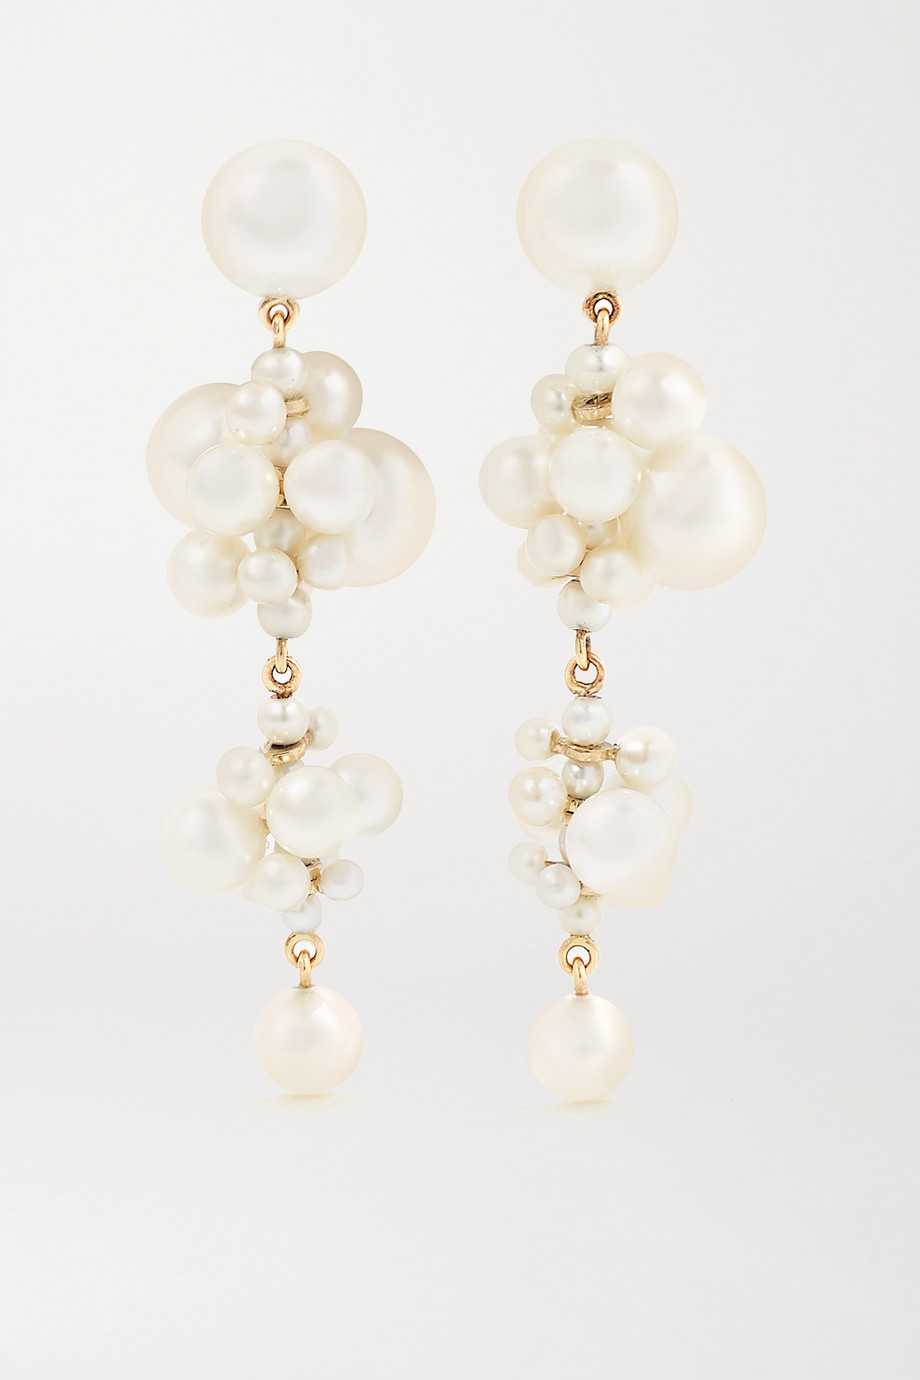 Sophie Bille Brahe Celli 14-karat gold pearl earrings